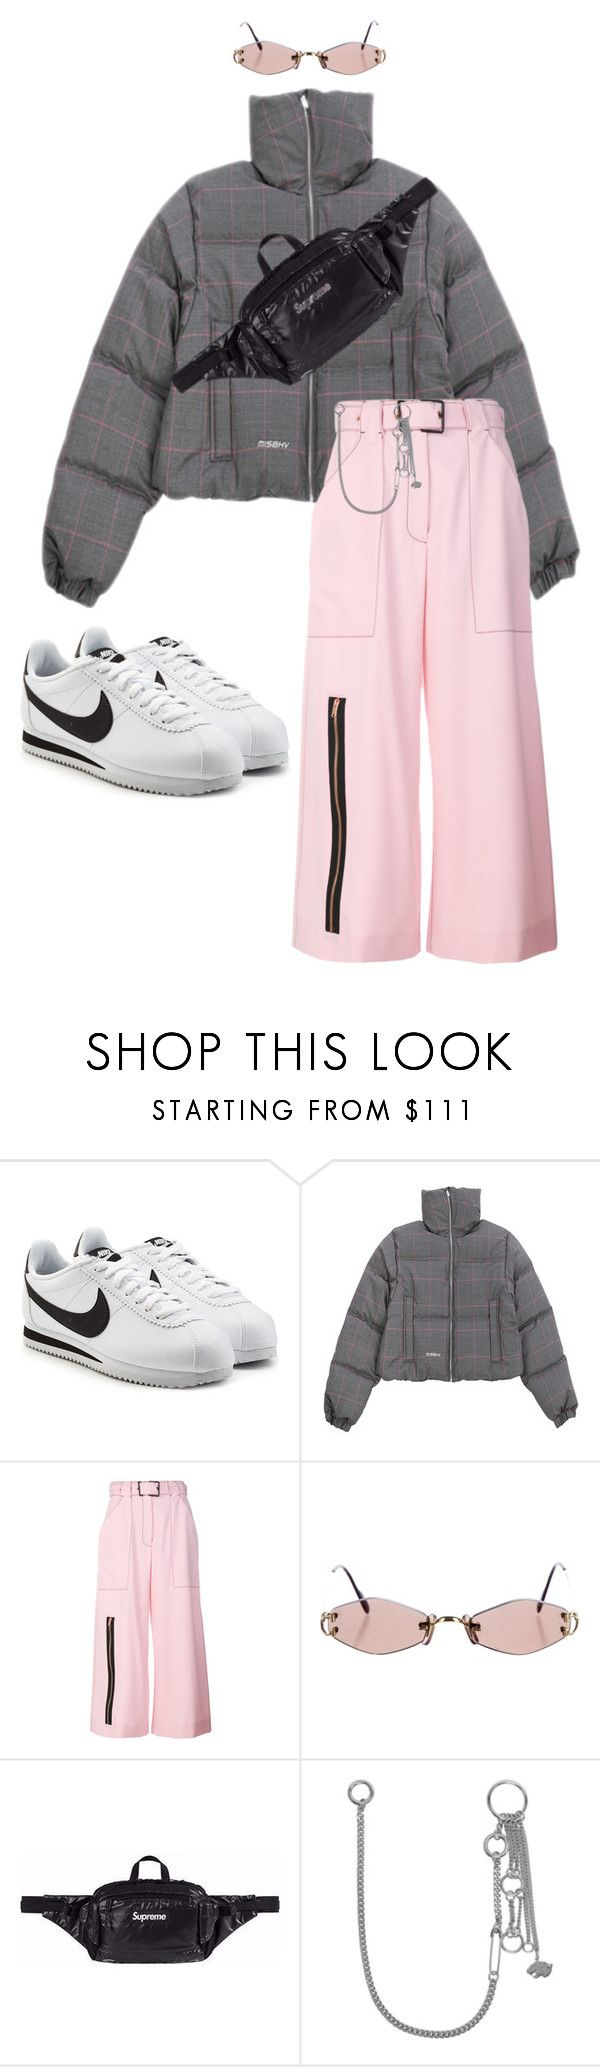 """Untitled #707"" by milly-oro on Polyvore featuring NIKE, MISBHV, Proenza Schouler, Cartier and Valentino"